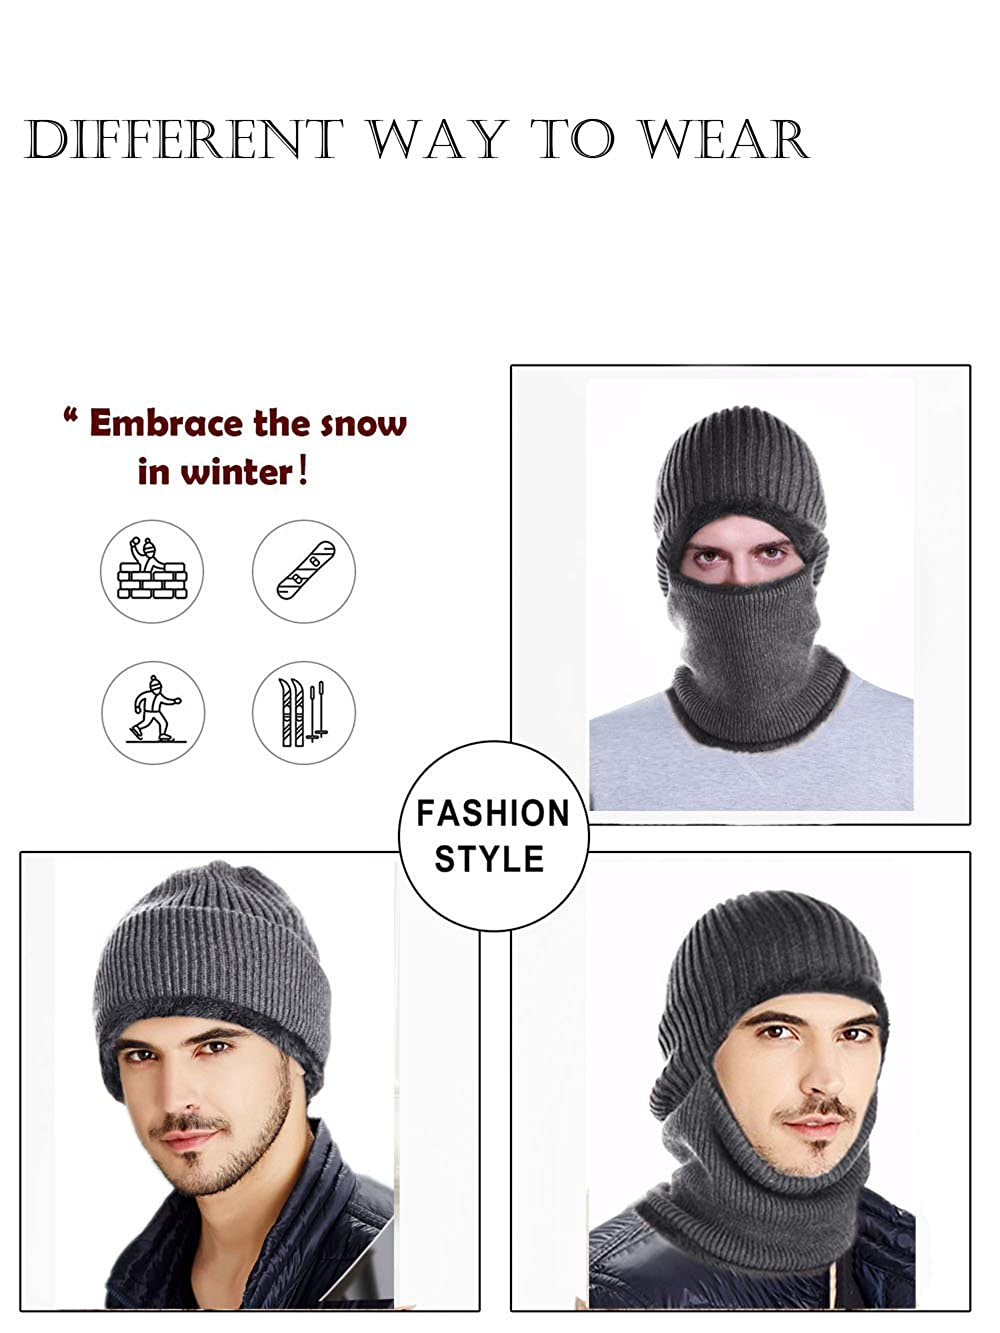 82082662cf7 Jovono 3-in-1 Kint Winter Hats for Men and Women